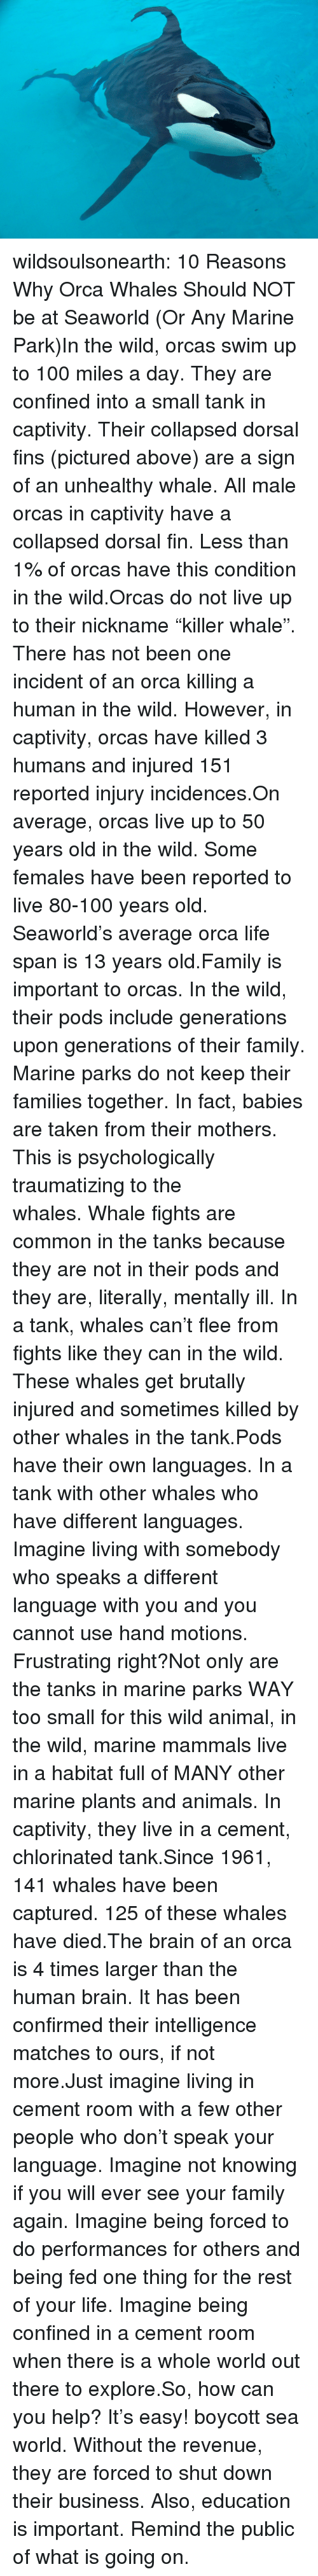 """orca: wildsoulsonearth:  10 Reasons Why Orca Whales Should NOT be at Seaworld (Or Any Marine Park)In the wild, orcas swim up to 100 miles a day. They are confined into a small tank in captivity.Their collapsed dorsal fins (pictured above) are a sign of an unhealthy whale. All male orcas in captivity have a collapsed dorsal fin. Less than 1% of orcas have this condition in the wild.Orcas do not live up to their nickname""""killer whale"""". There has not been one incident of an orca killing a human in the wild. However, in captivity, orcas have killed 3 humans and injured 151 reported injury incidences.On average, orcas live up to 50 years old in the wild. Some females have been reported to live 80-100 years old. Seaworld's average orca life span is 13 years old.Family is important to orcas. In the wild, their pods include generations upon generations of their family. Marine parks do not keep their families together. In fact, babies are taken from their mothers. This is psychologically traumatizing to the whales.Whale fights are common in the tanks because they are not in their pods and they are, literally, mentally ill. In a tank, whales can't flee from fights like they can in the wild. These whales get brutally injured and sometimes killed by other whales in the tank.Pods have their own languages. In a tank with other whales who have different languages. Imagine living with somebody who speaks a different language with you and you cannot use hand motions. Frustrating right?Not only are the tanks in marine parks WAY too small for this wild animal, in the wild, marine mammals live in a habitat full of MANY other marine plants and animals. In captivity, they live in a cement, chlorinated tank.Since 1961, 141 whales have been captured. 125 of these whales have died.The brain of an orca is 4 times larger than the human brain. It has been confirmed their intelligence matches to ours, if not more.Just imagine living in cement room with a few other people who don't speak your la"""